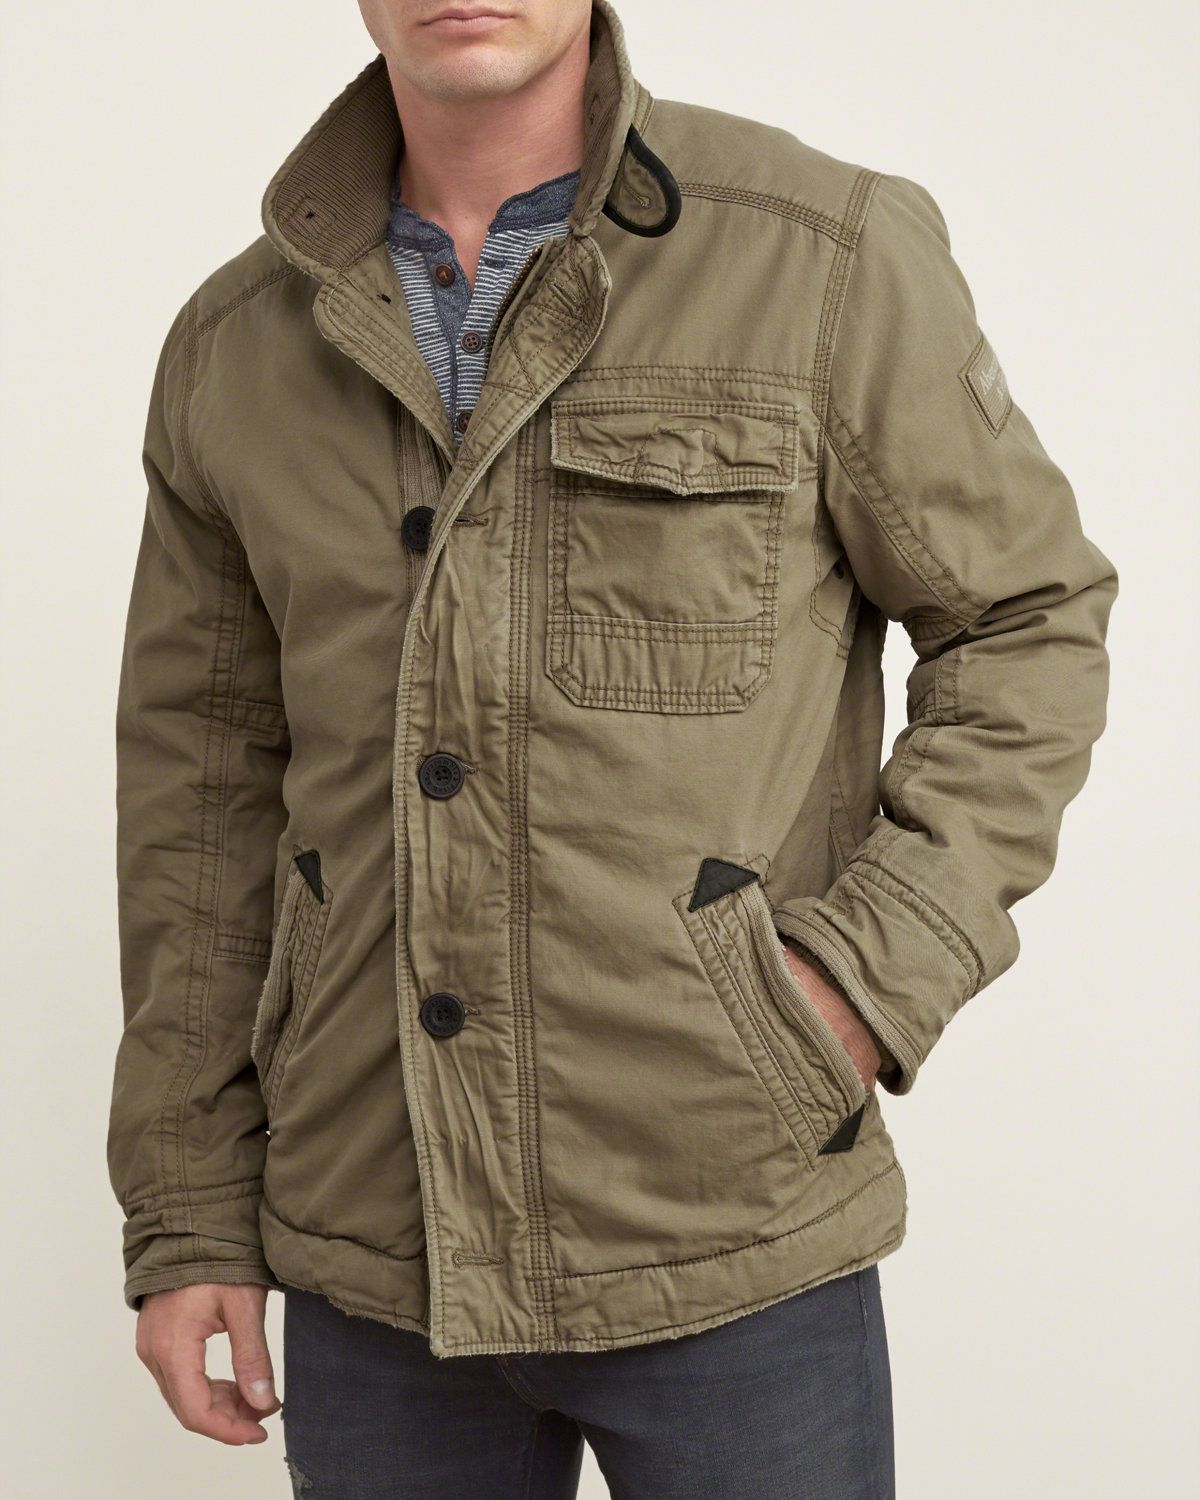 A F Utility Jacket Mens Outerwear Jacket Jackets Mens Outfits [ 1500 x 1200 Pixel ]